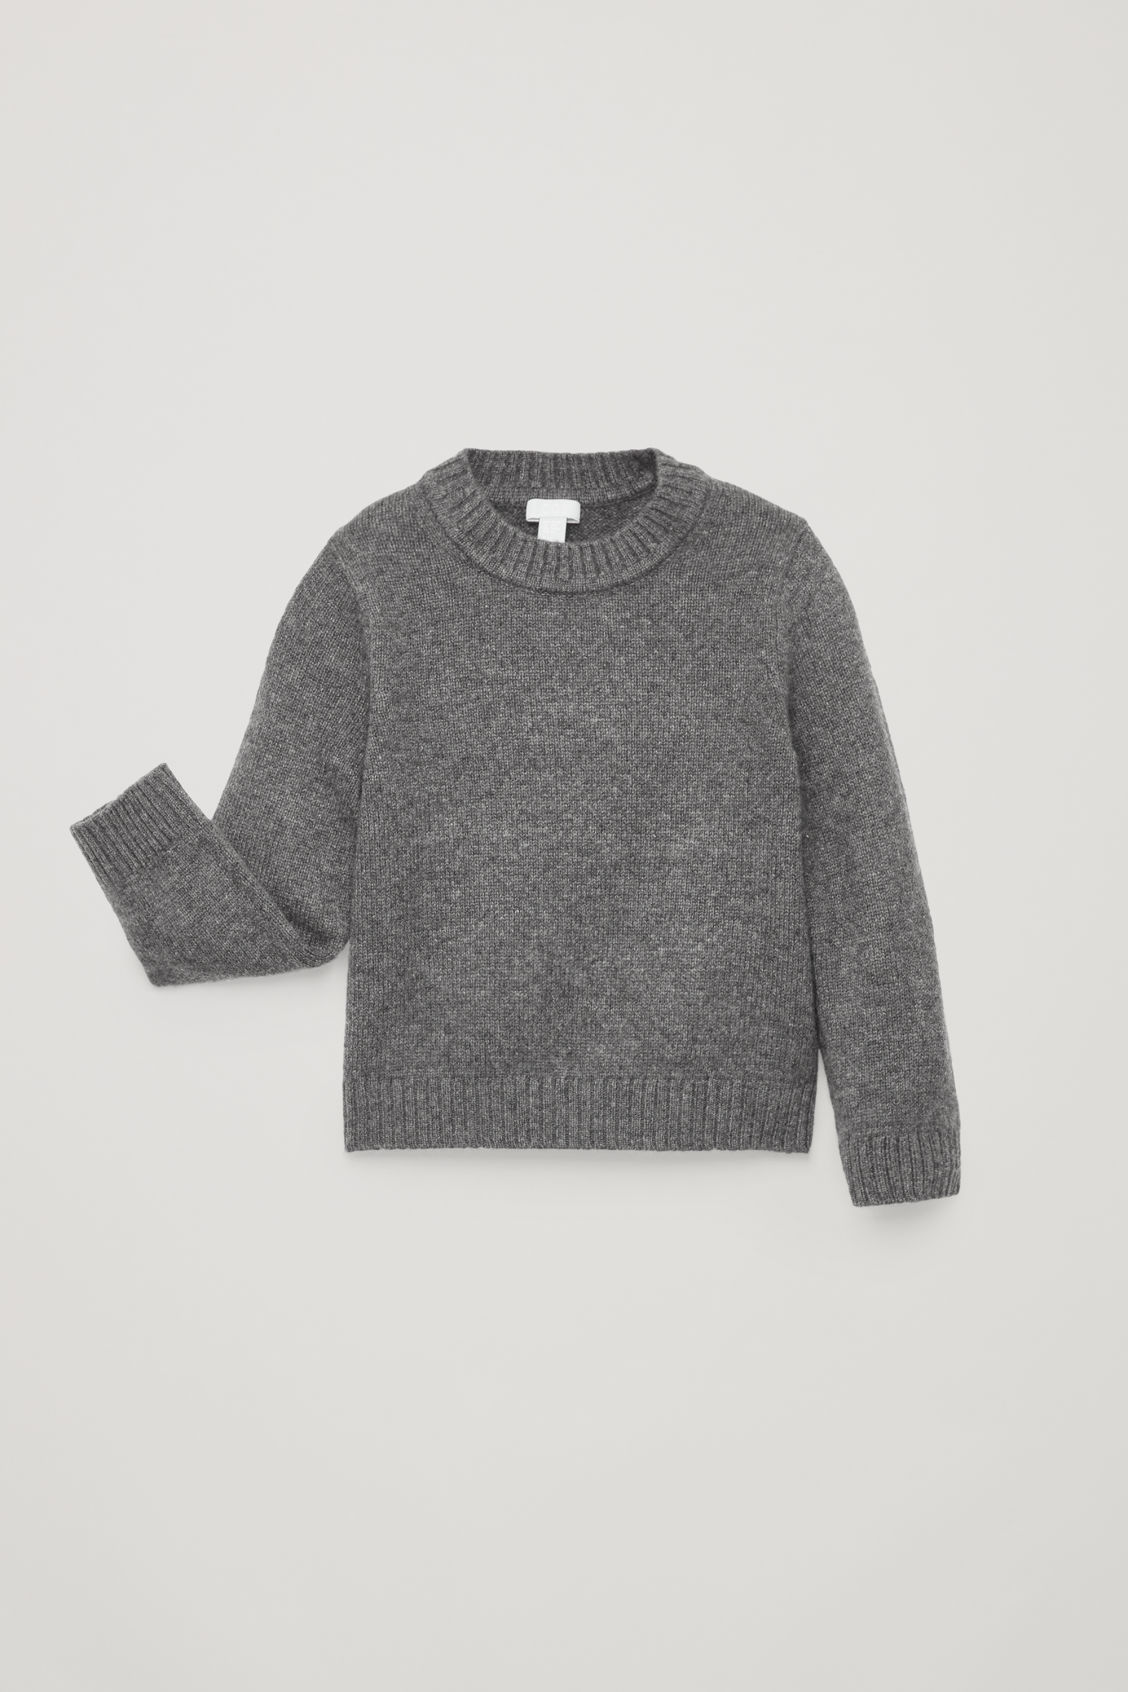 Detailed image of Cos cashmere knitted jumper  in grey